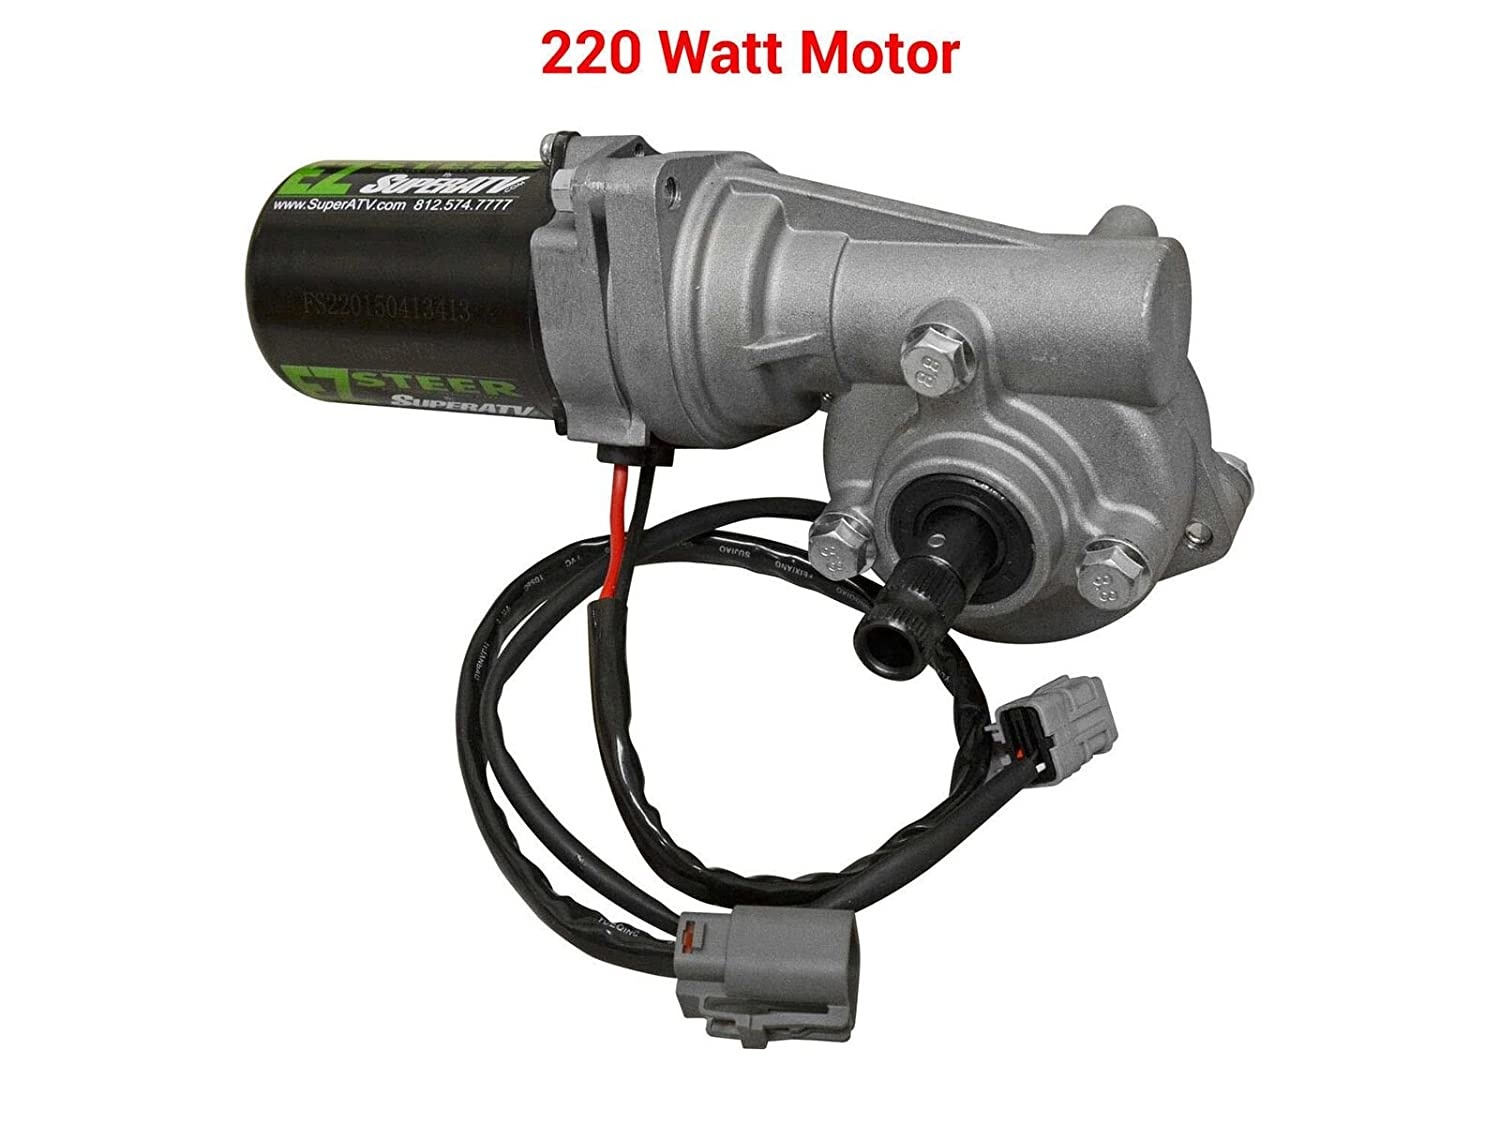 Superatv Can Am Maverick Ez Steer Power Steering Kit Easy Wiring Harness Vw Air Cooled 2012 2015 220w Motor Automotive